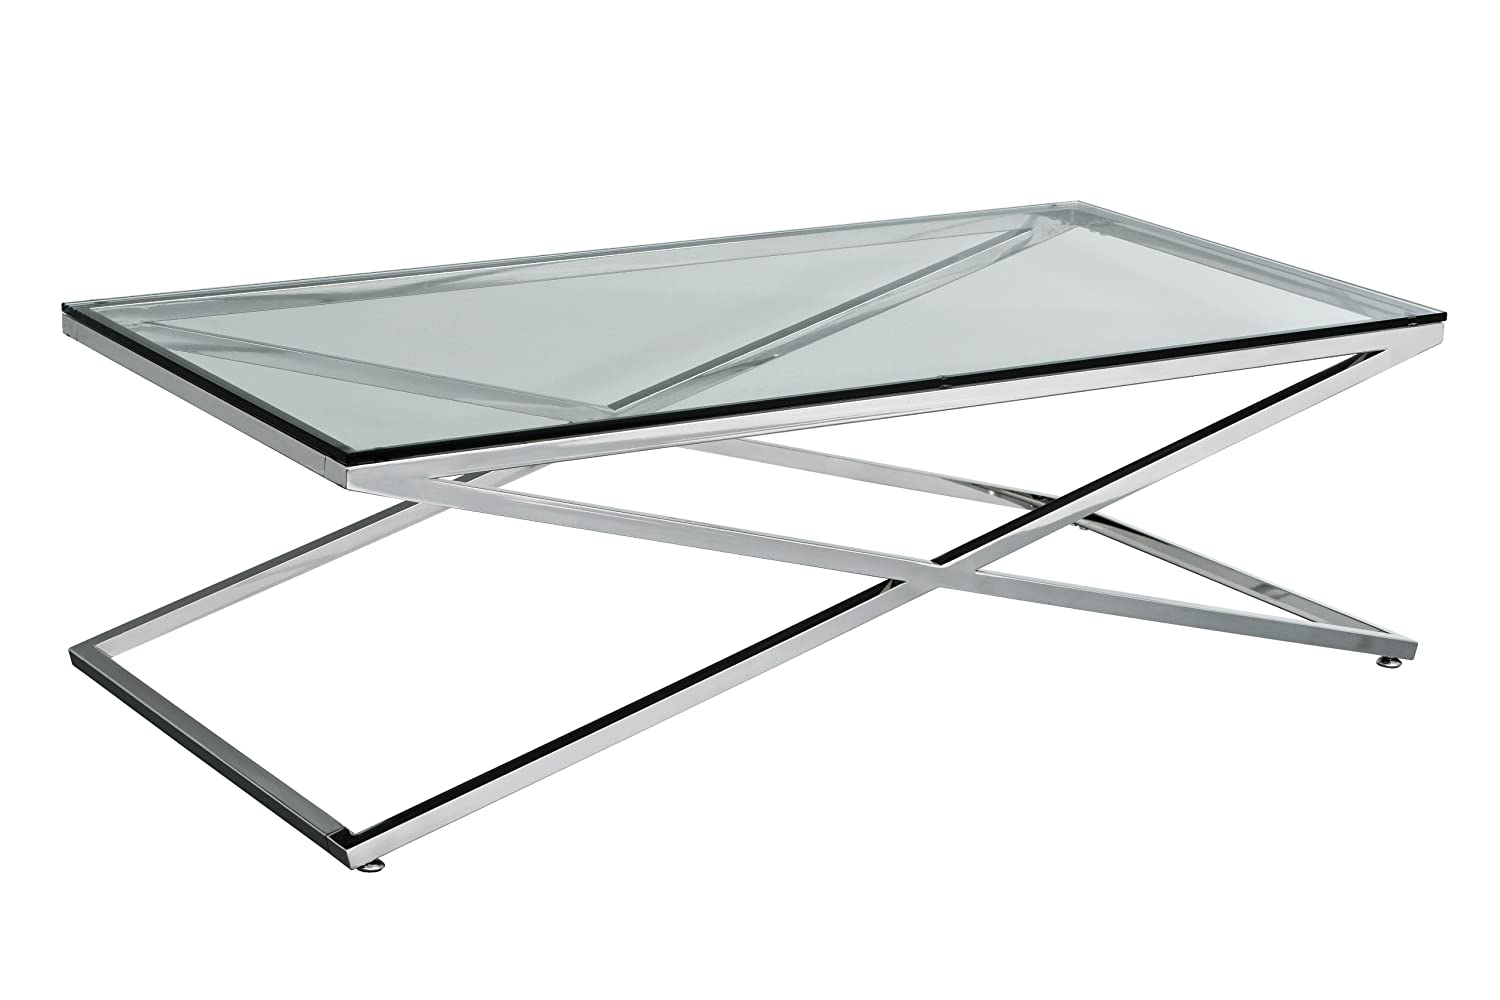 premier housewares coffee table with stainless steel frame and